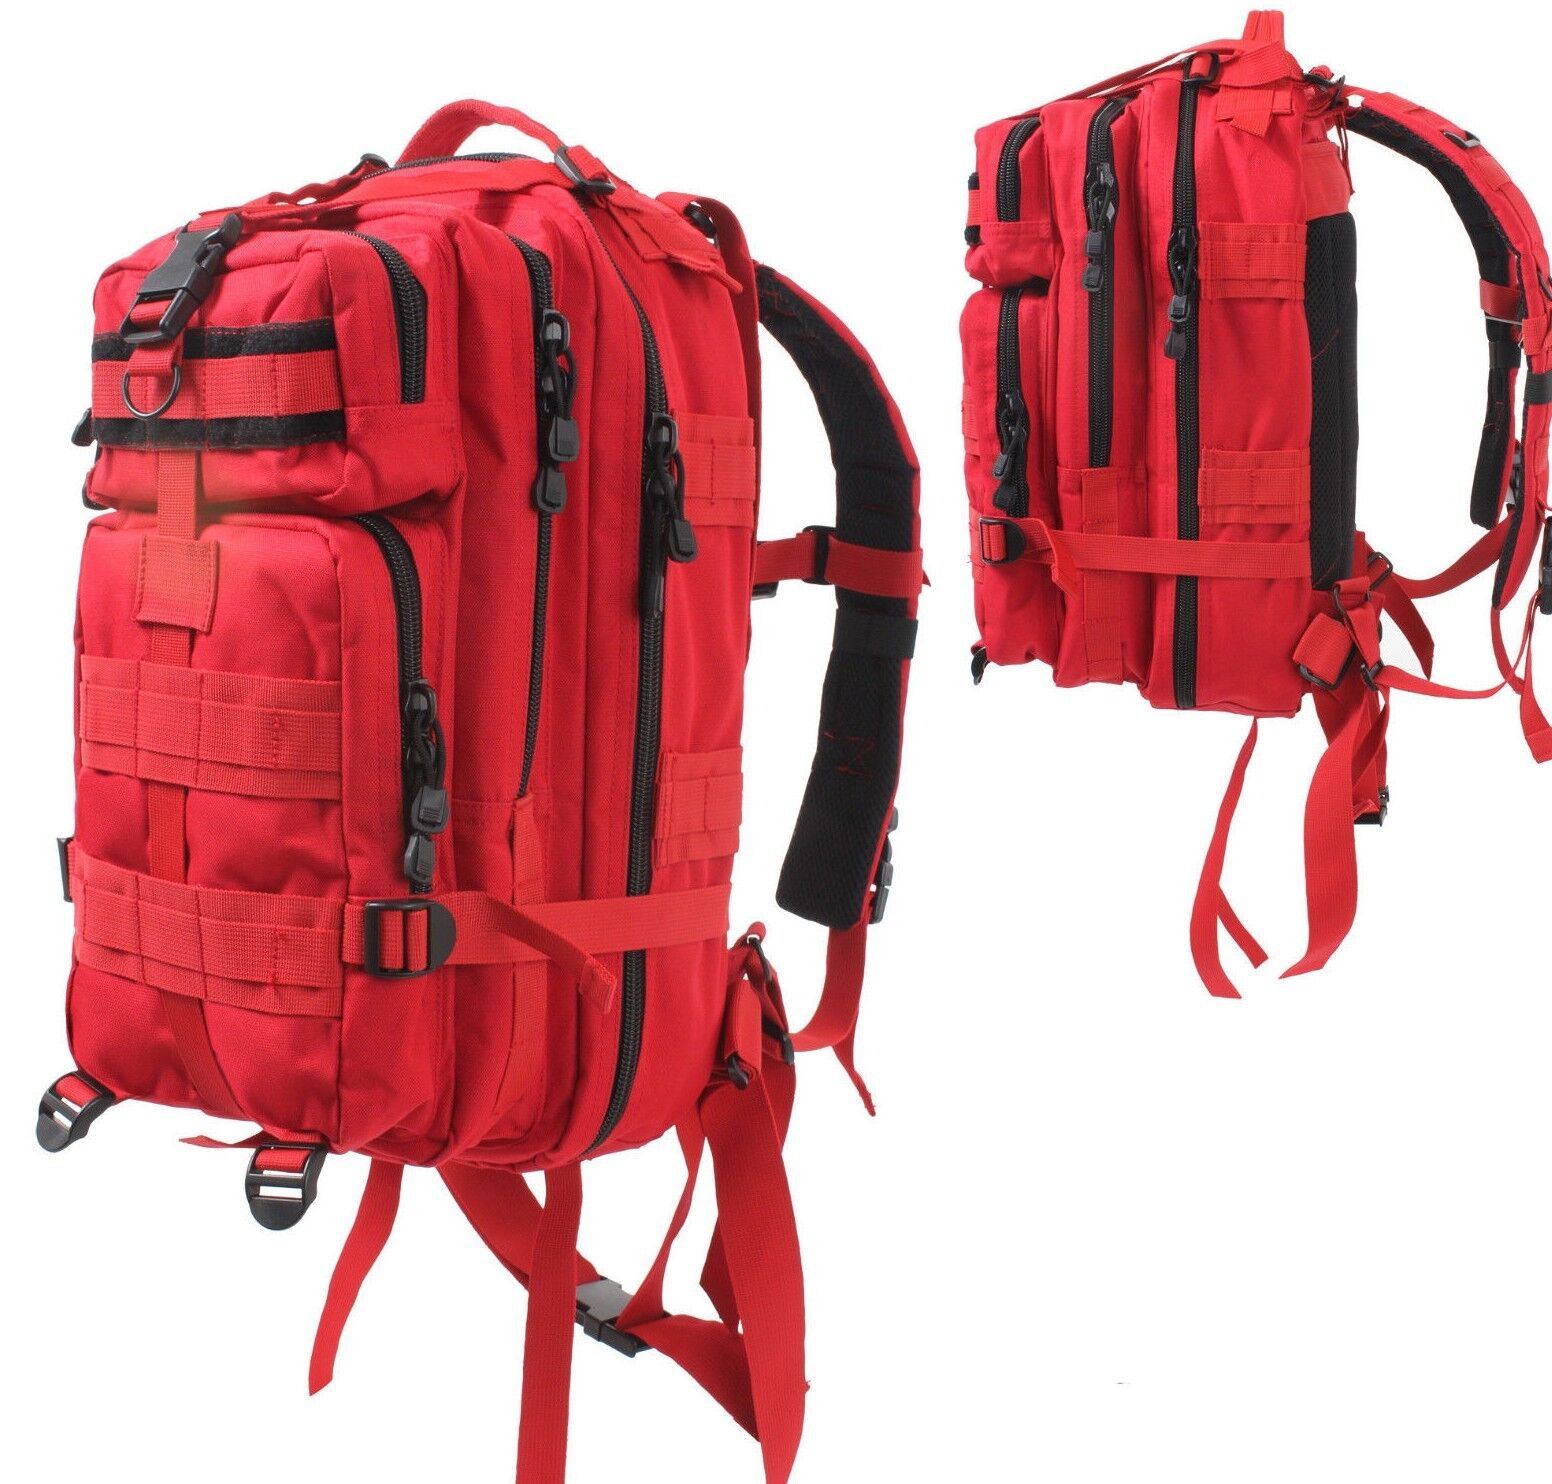 medium transport pack backpack tactical military style red